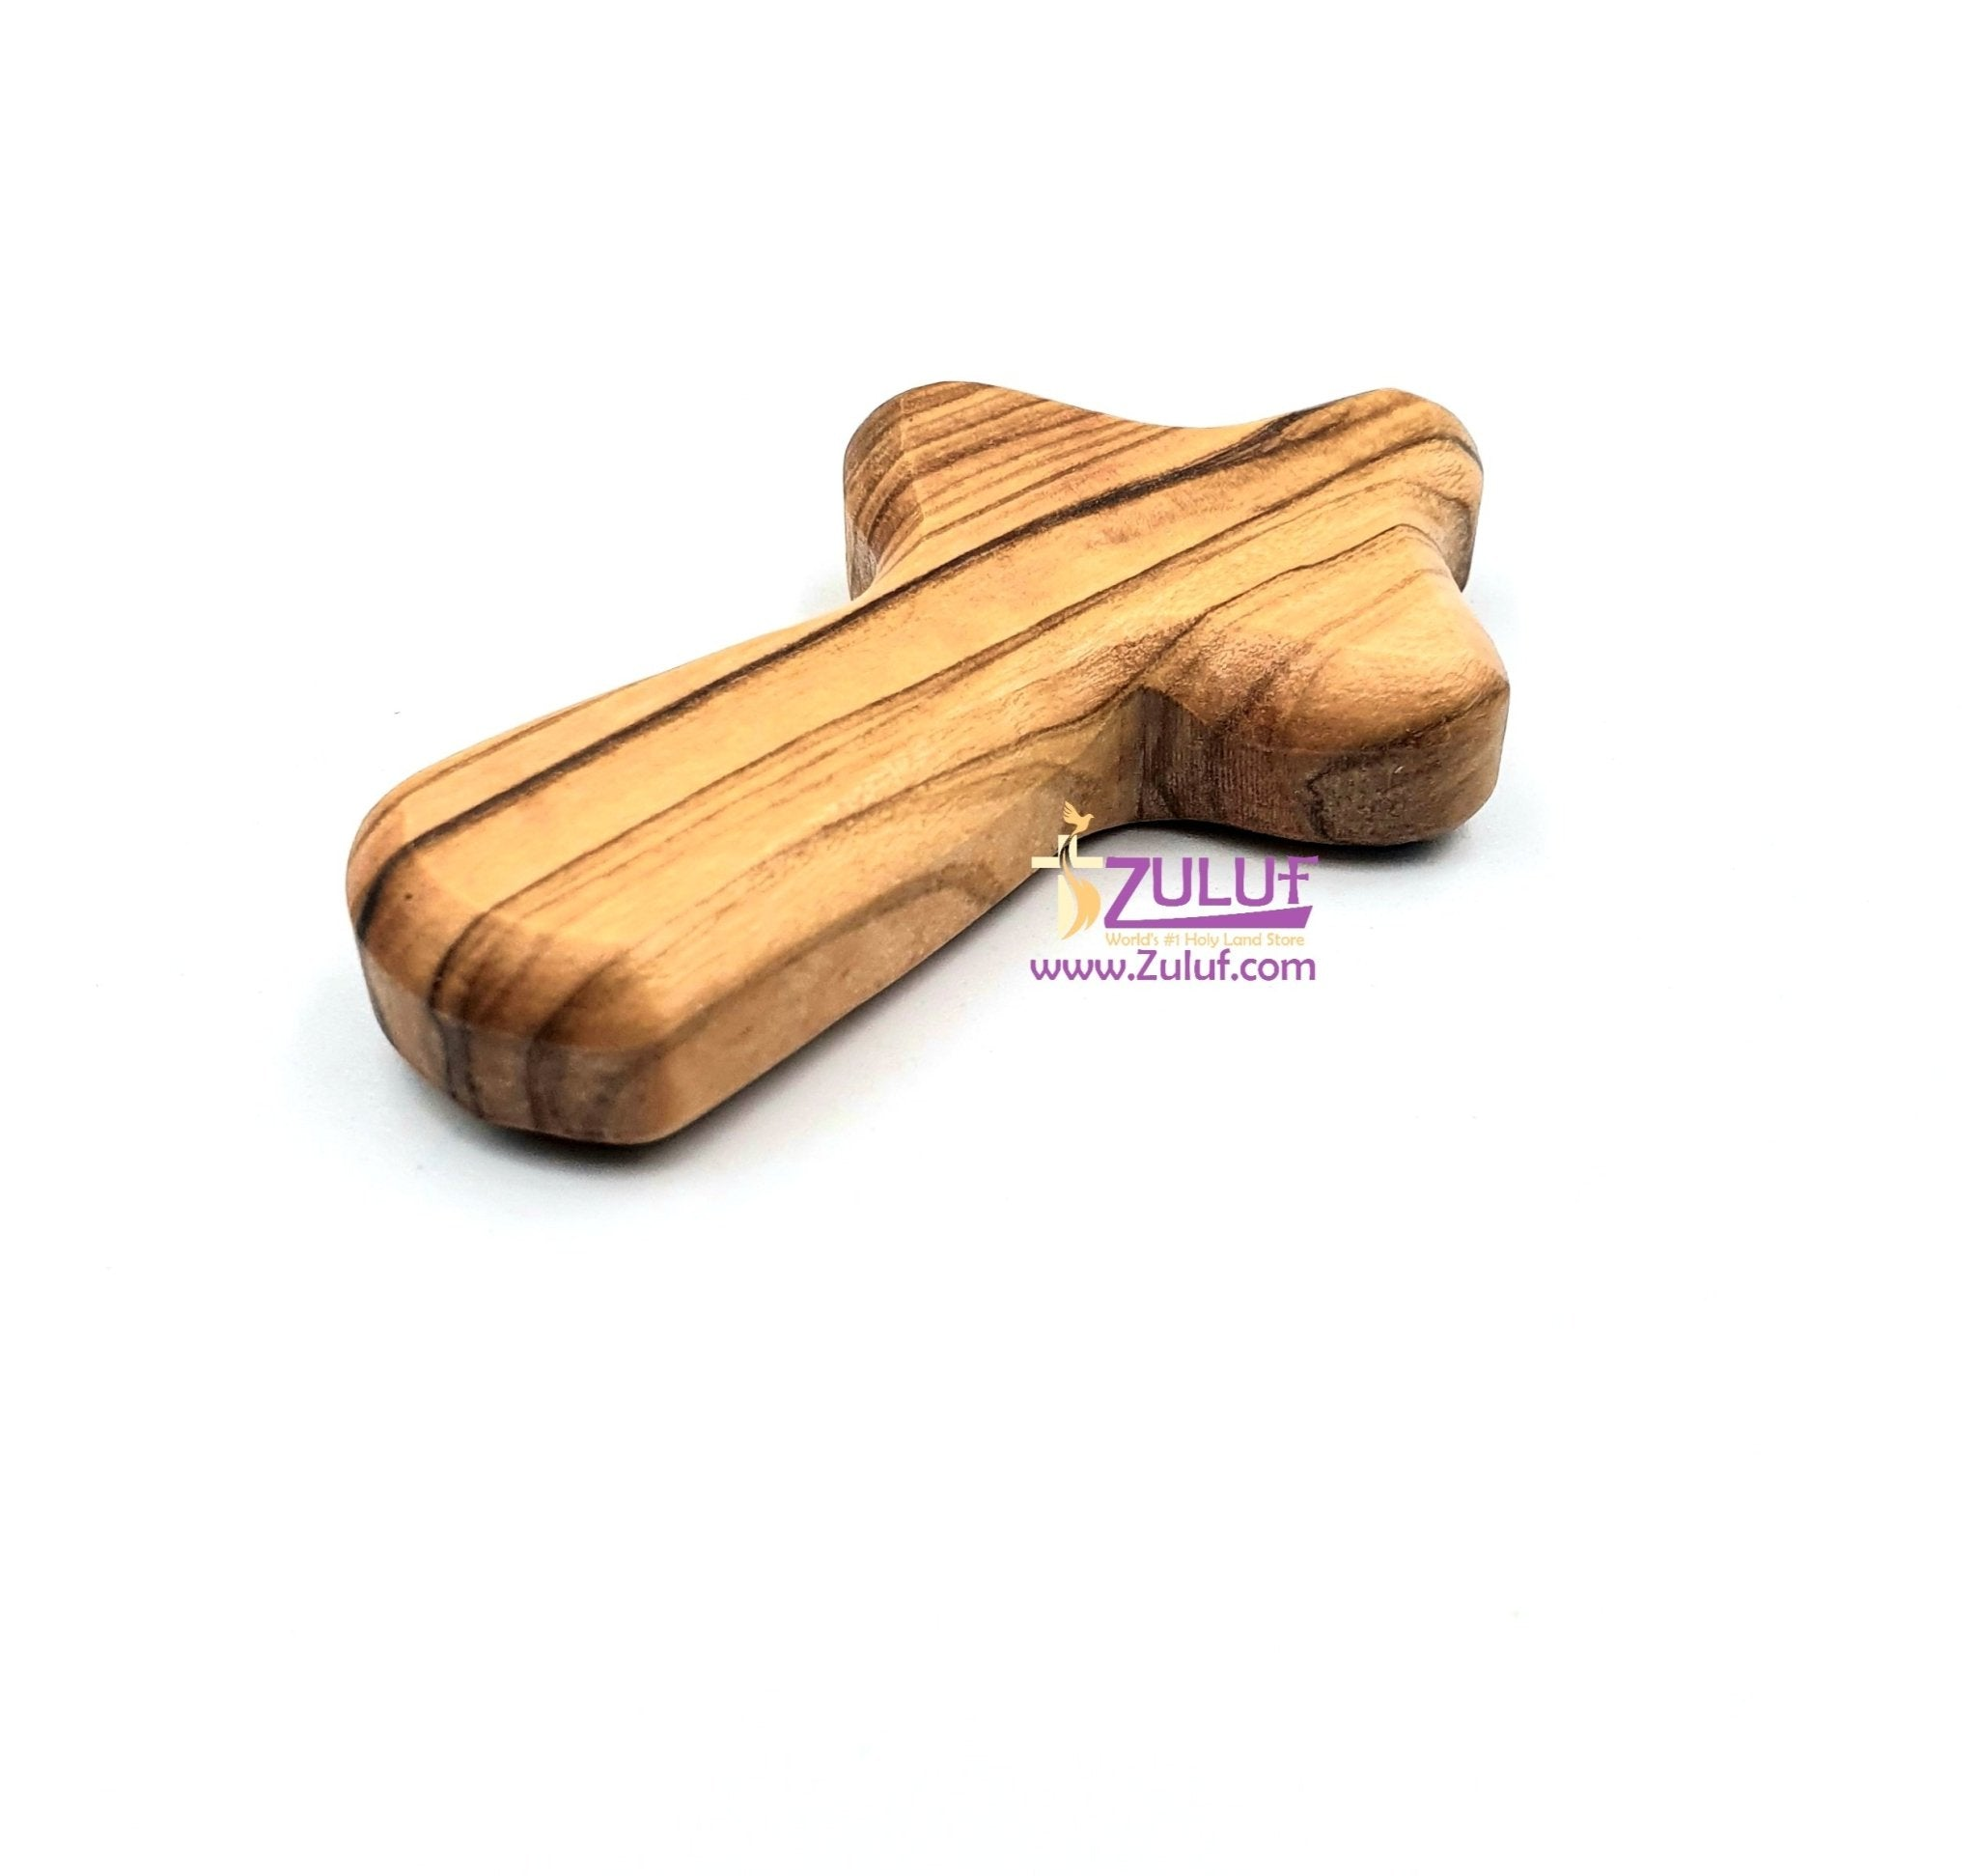 Zuluf Olive Wood Holding Small hand held Cross Bethlehem Holy Land - CRS001 - Zuluf